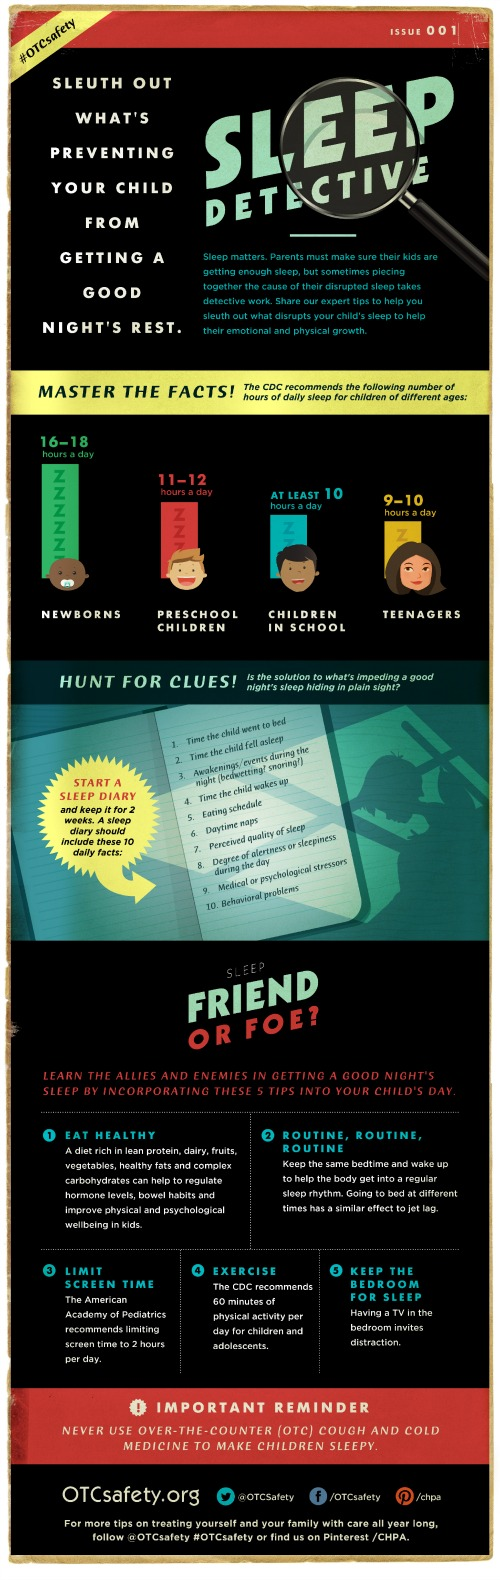 Final_SleepDetective_MasterFacts_FriendFoe_Infographic